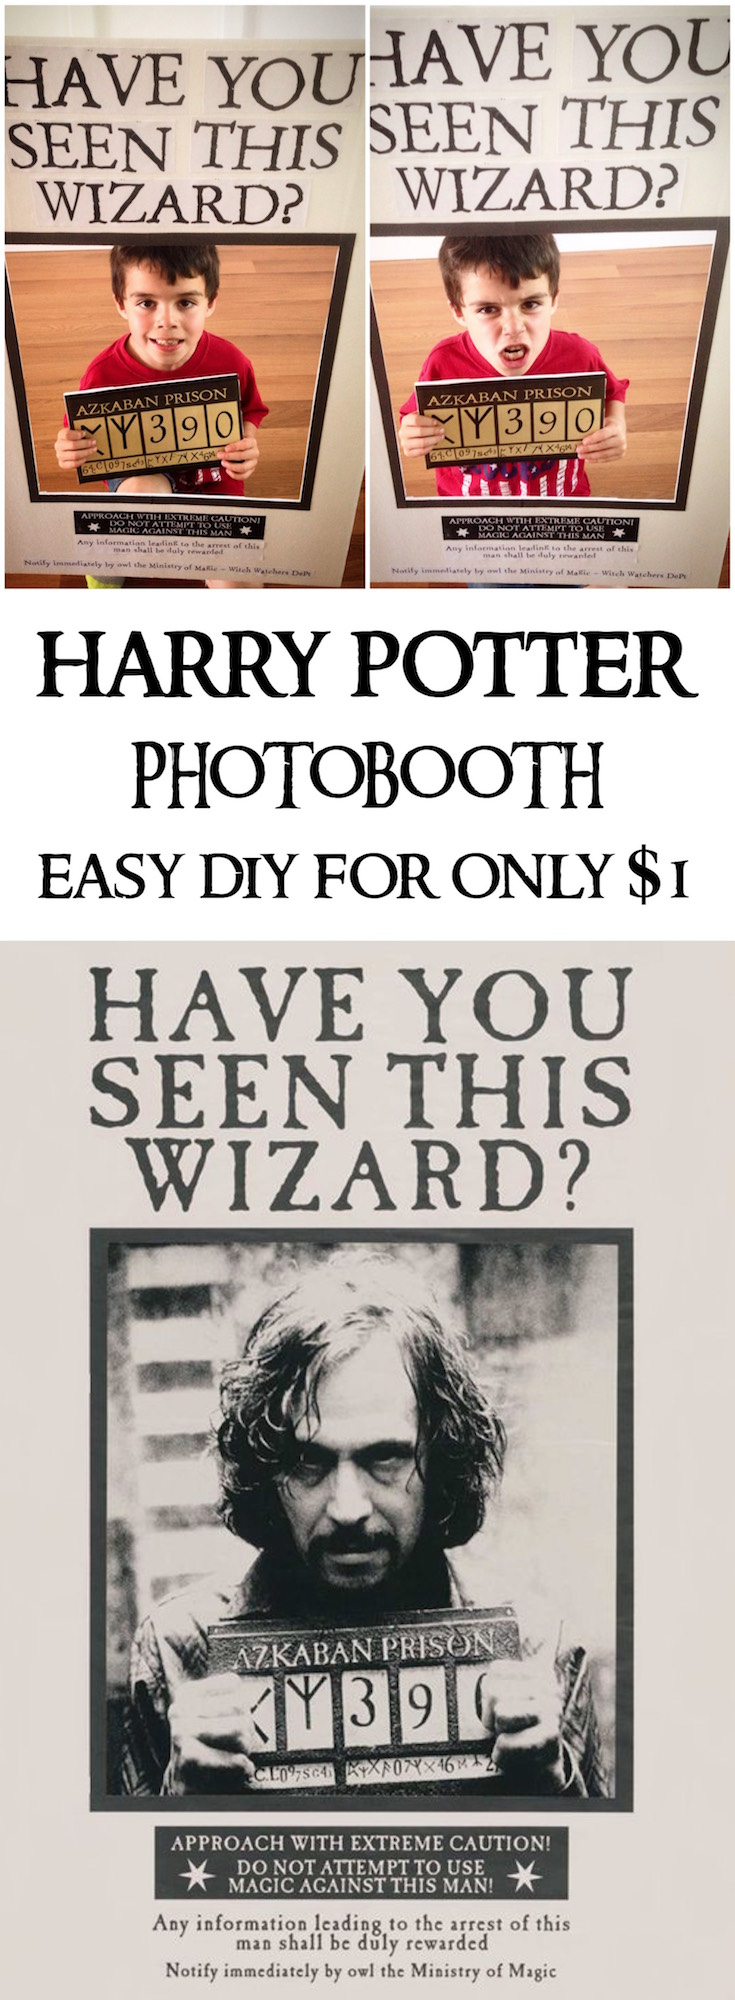 photo about Have You Seen This Wizard Printable titled Harry Potter Get together Photobooth Very simple Do-it-yourself - Paper Path Design and style